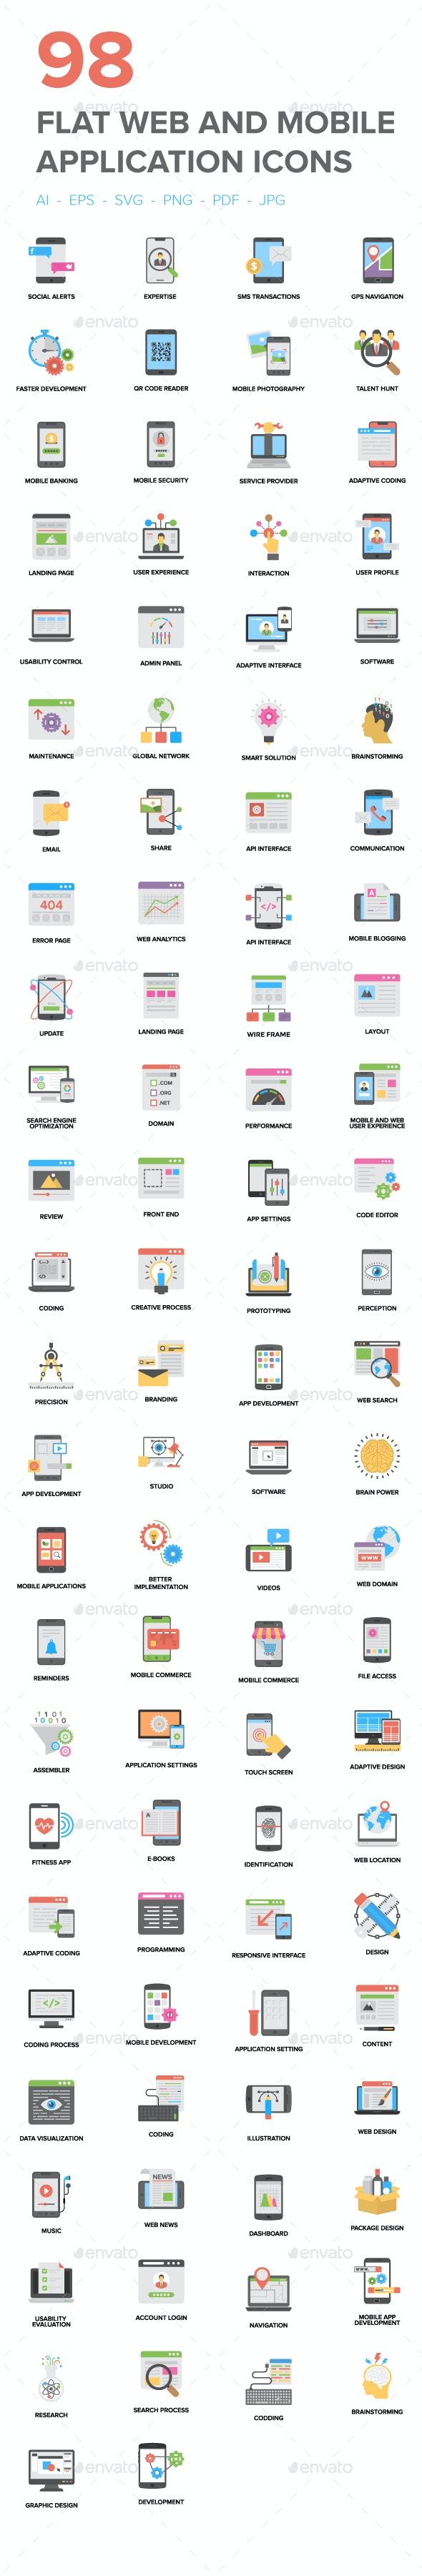 98 Flat Web and Mobile App Icons - Icons